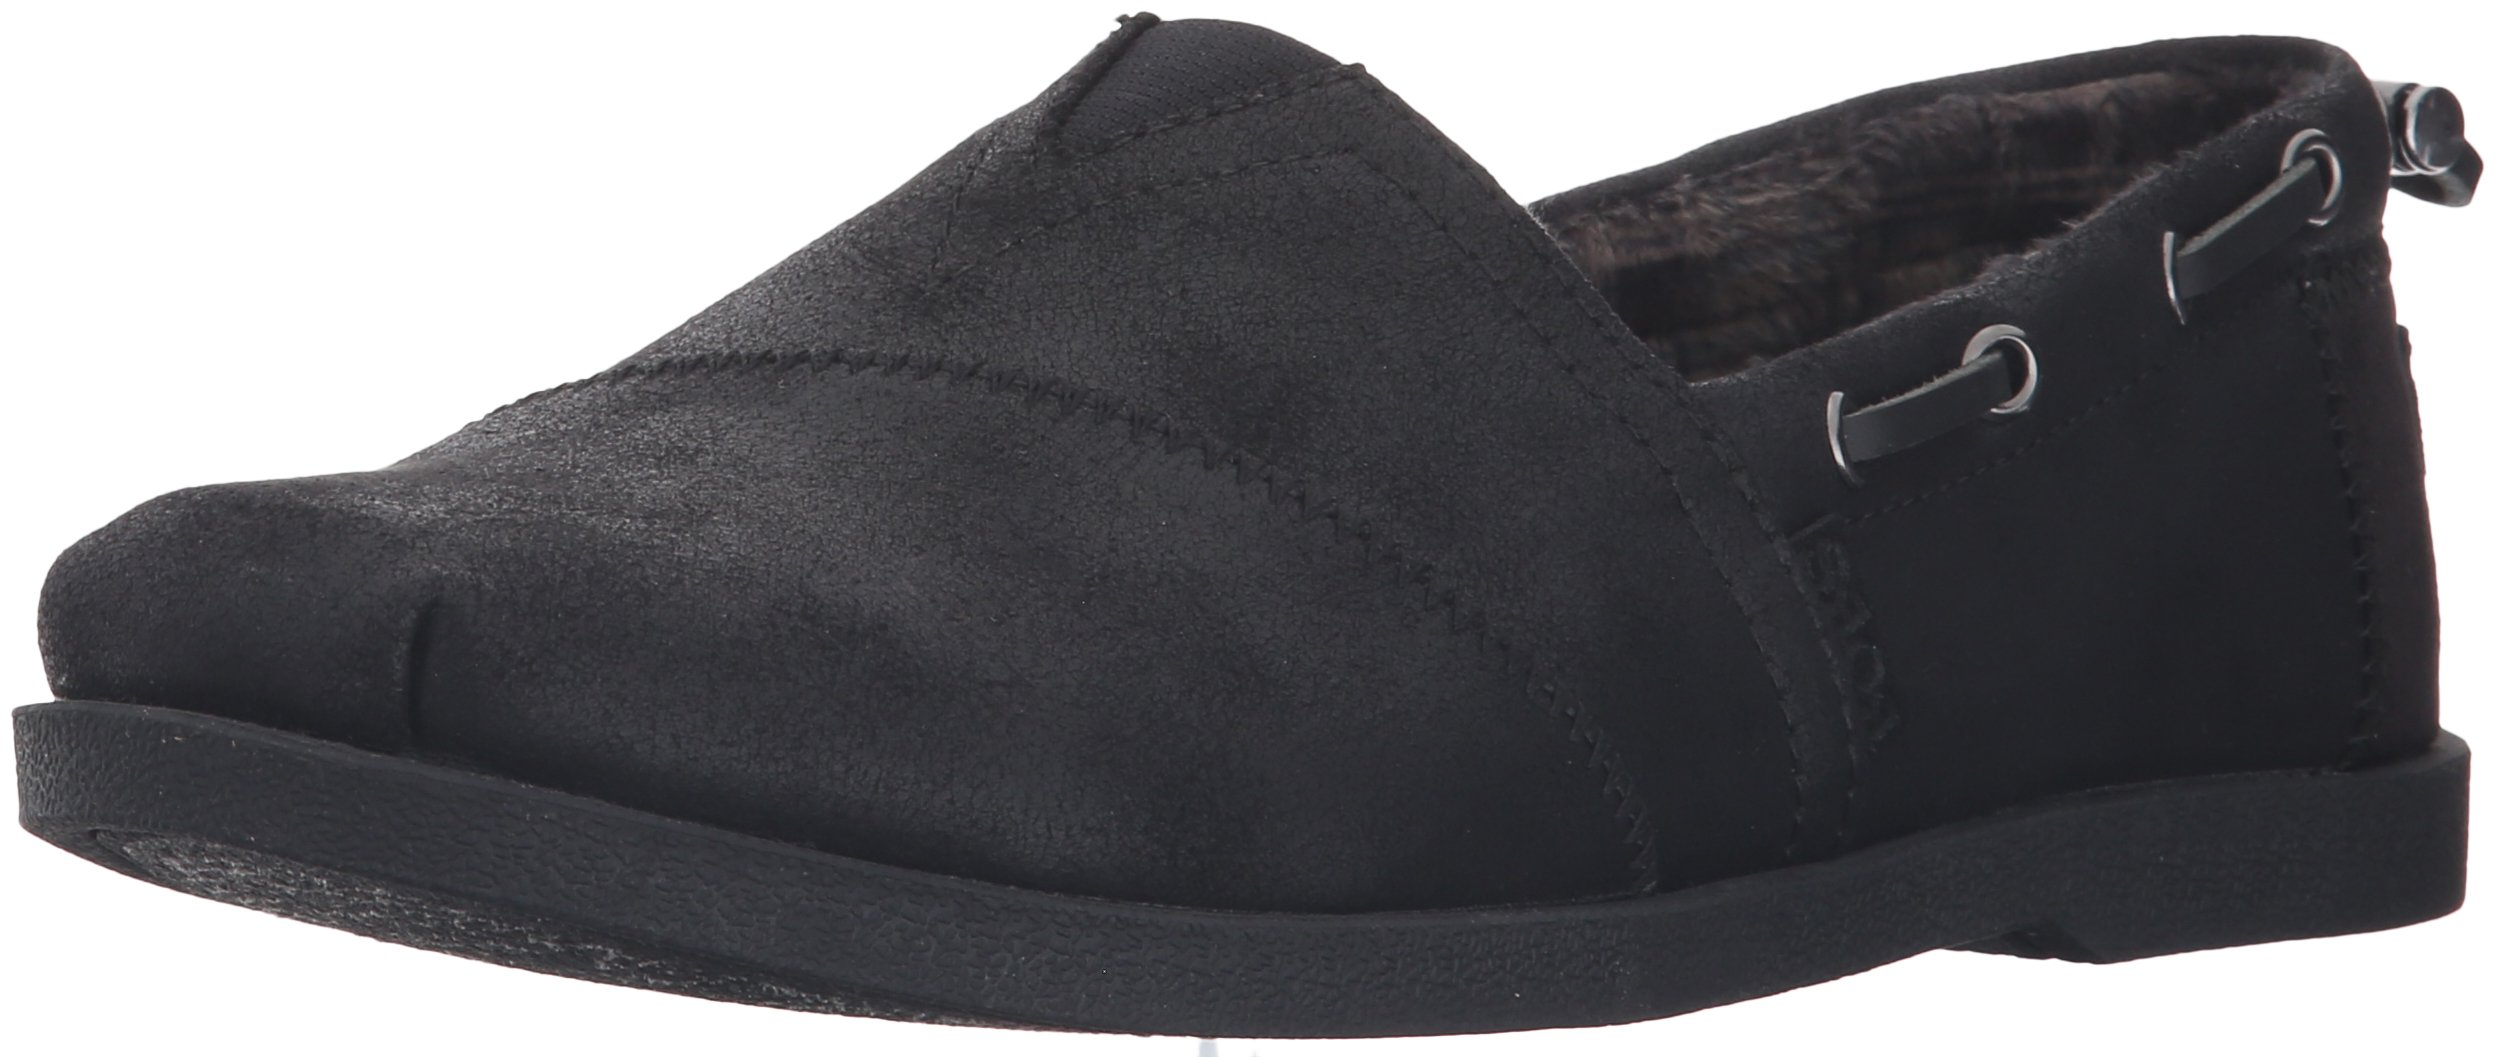 Skechers BOBS from Women's Chill Luxe - Buttoned up Flat, Black/Black, 8.5 W US